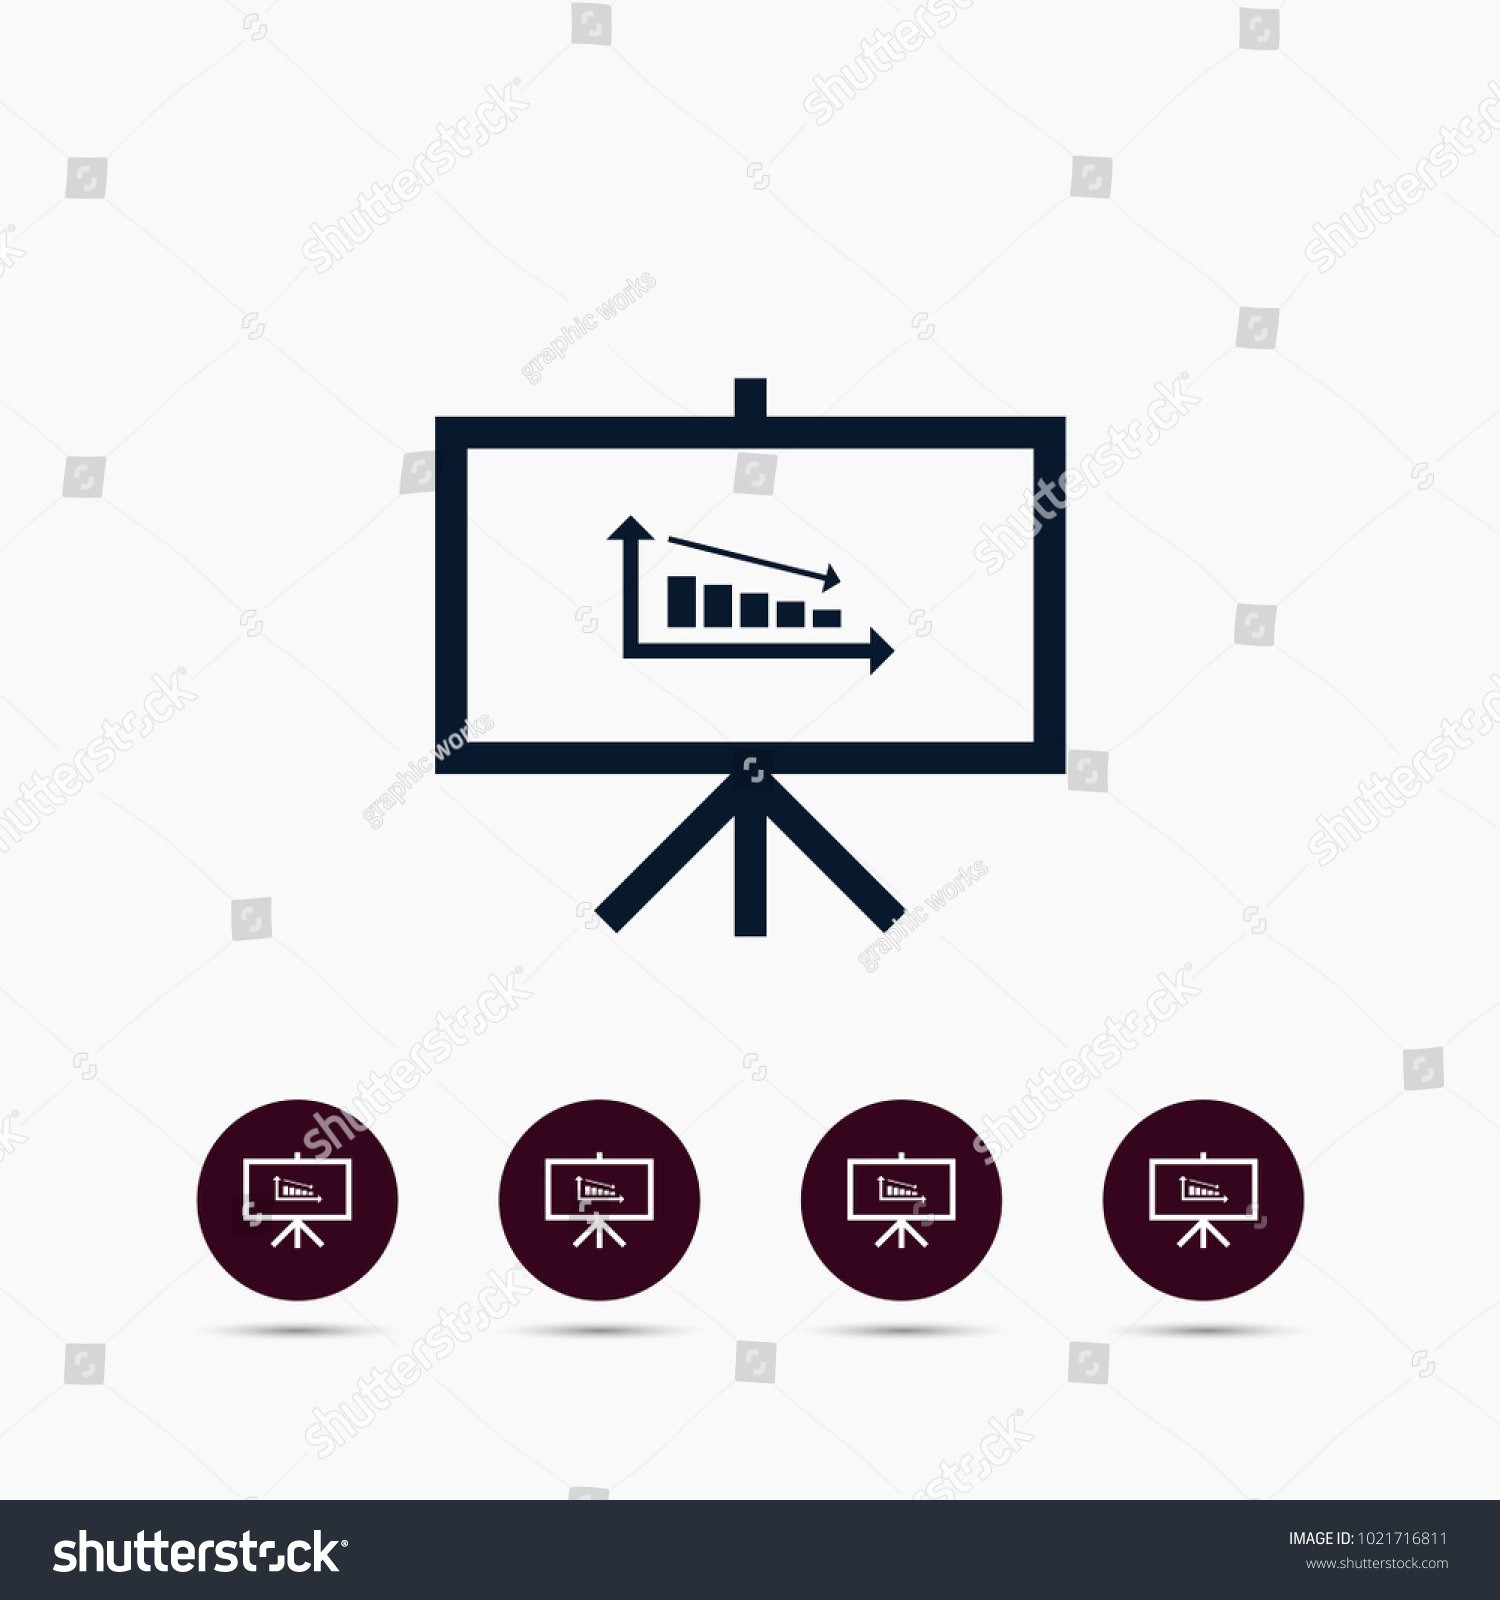 Diagram icon simple hr element illustration stock vector 1021716811 diagram icon simple hr element illustration office symbol design from business collection can ccuart Image collections